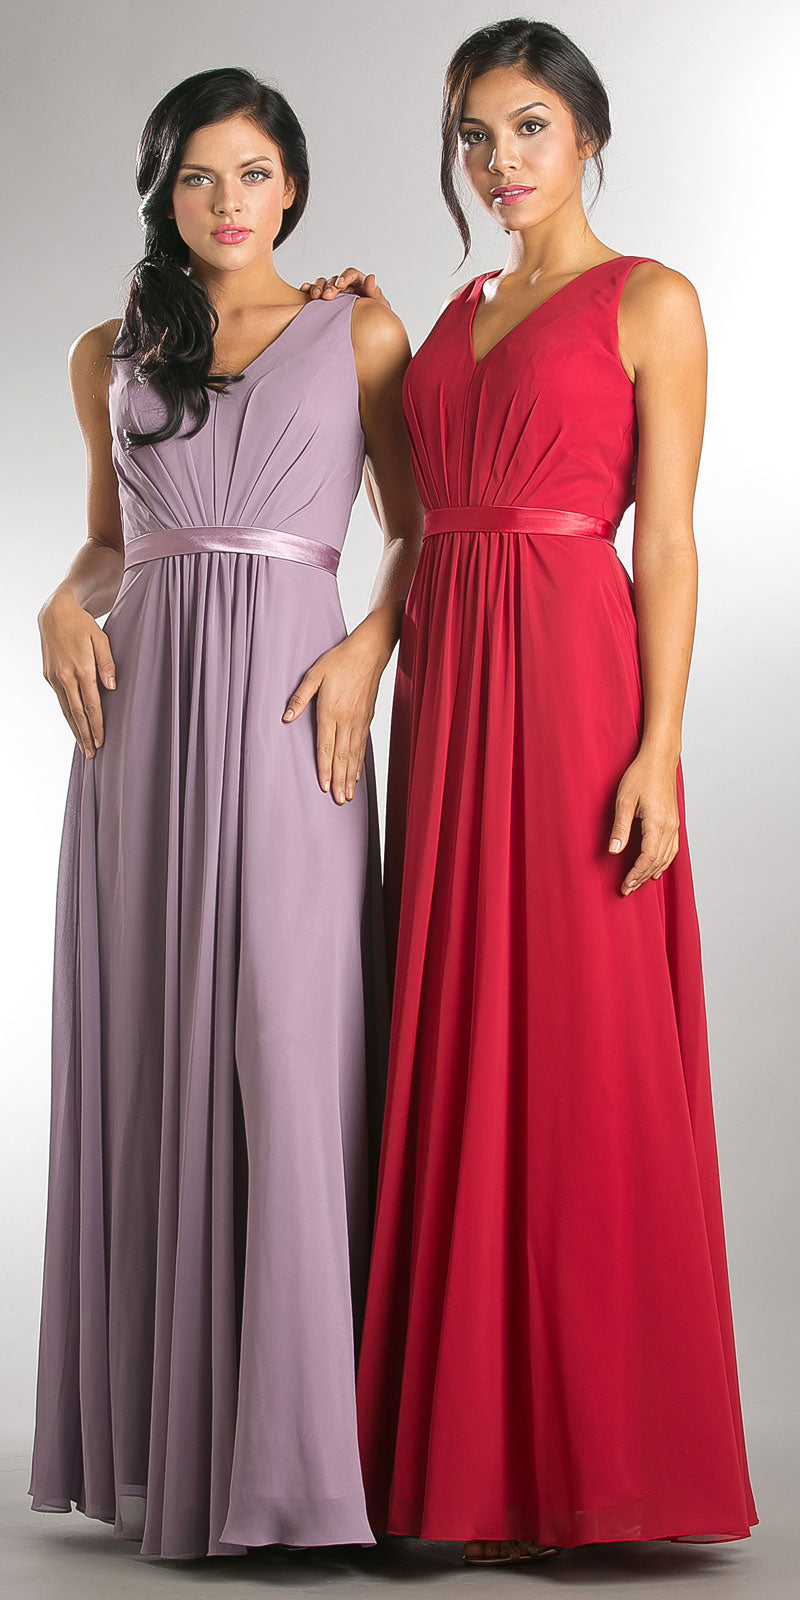 Image of V-neck Sleeveless Ruched Bodice Long Bridesmaid Dress in an alternate image